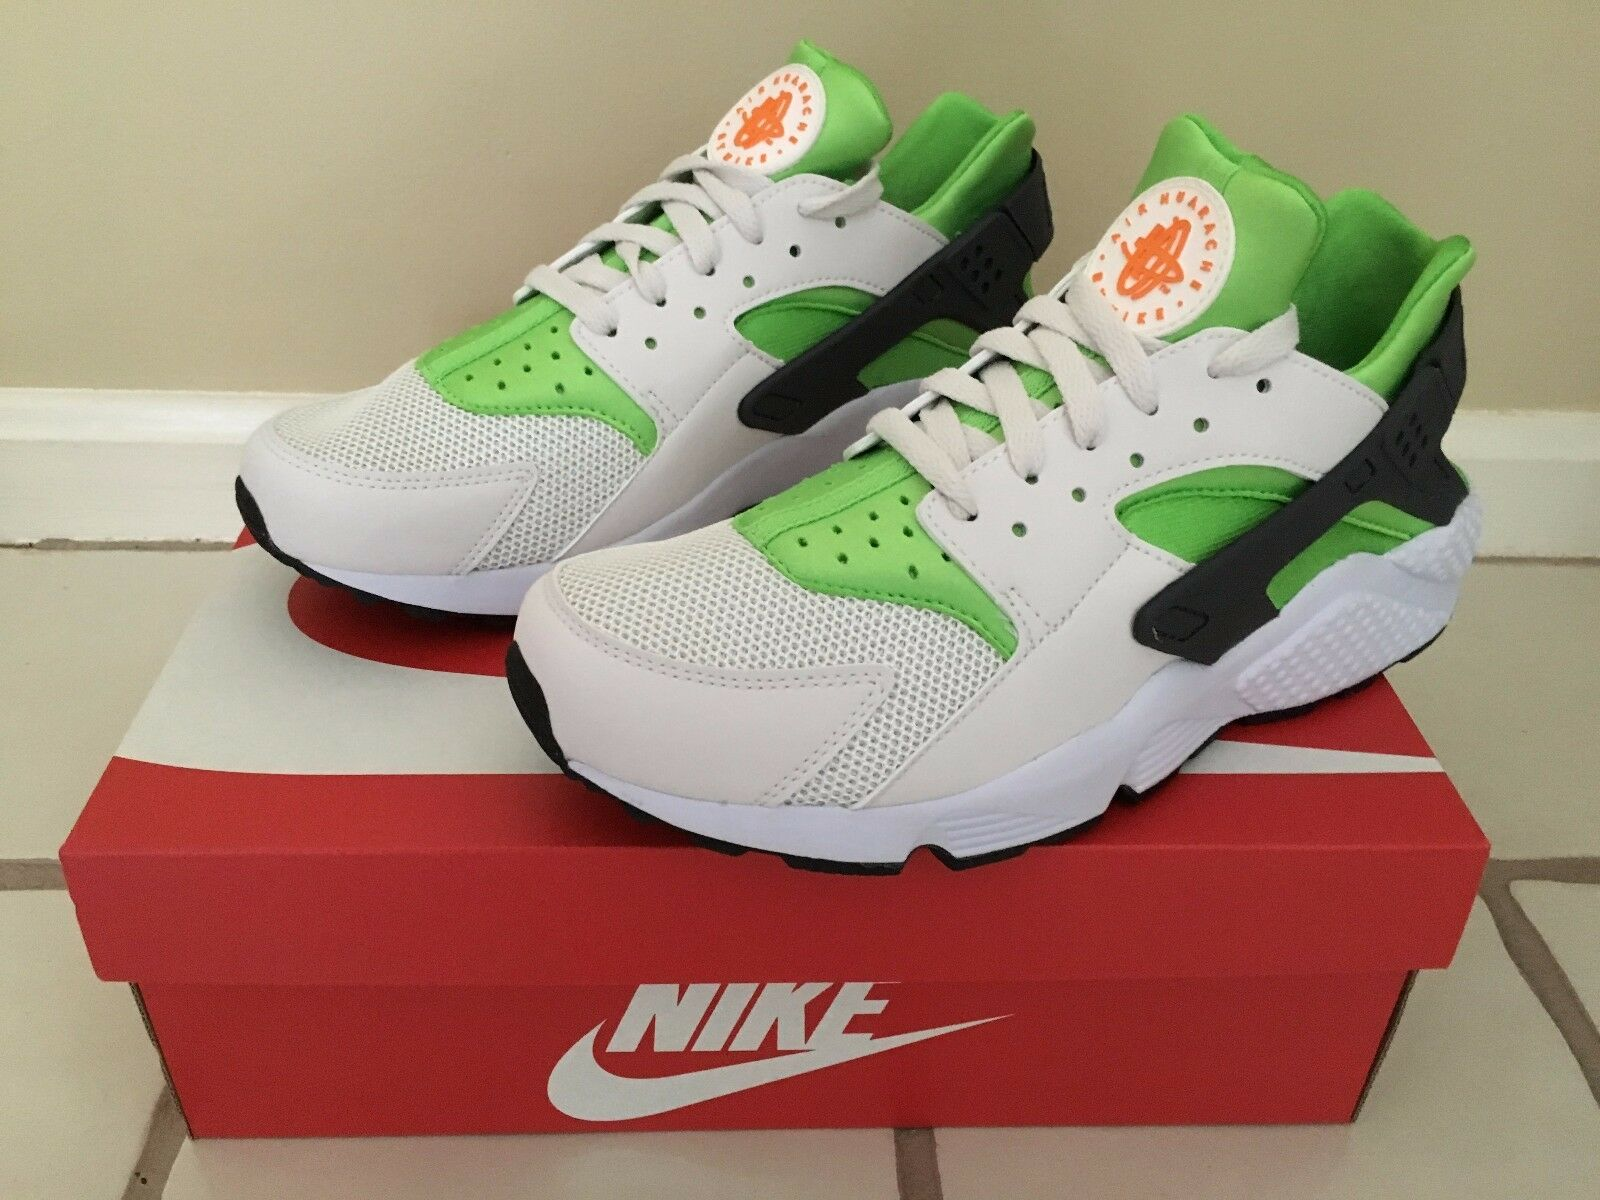 NIKE AIR HUARACHE SNEAKERS SIZE 10 318429304 BRAND NEW BEST OFFER